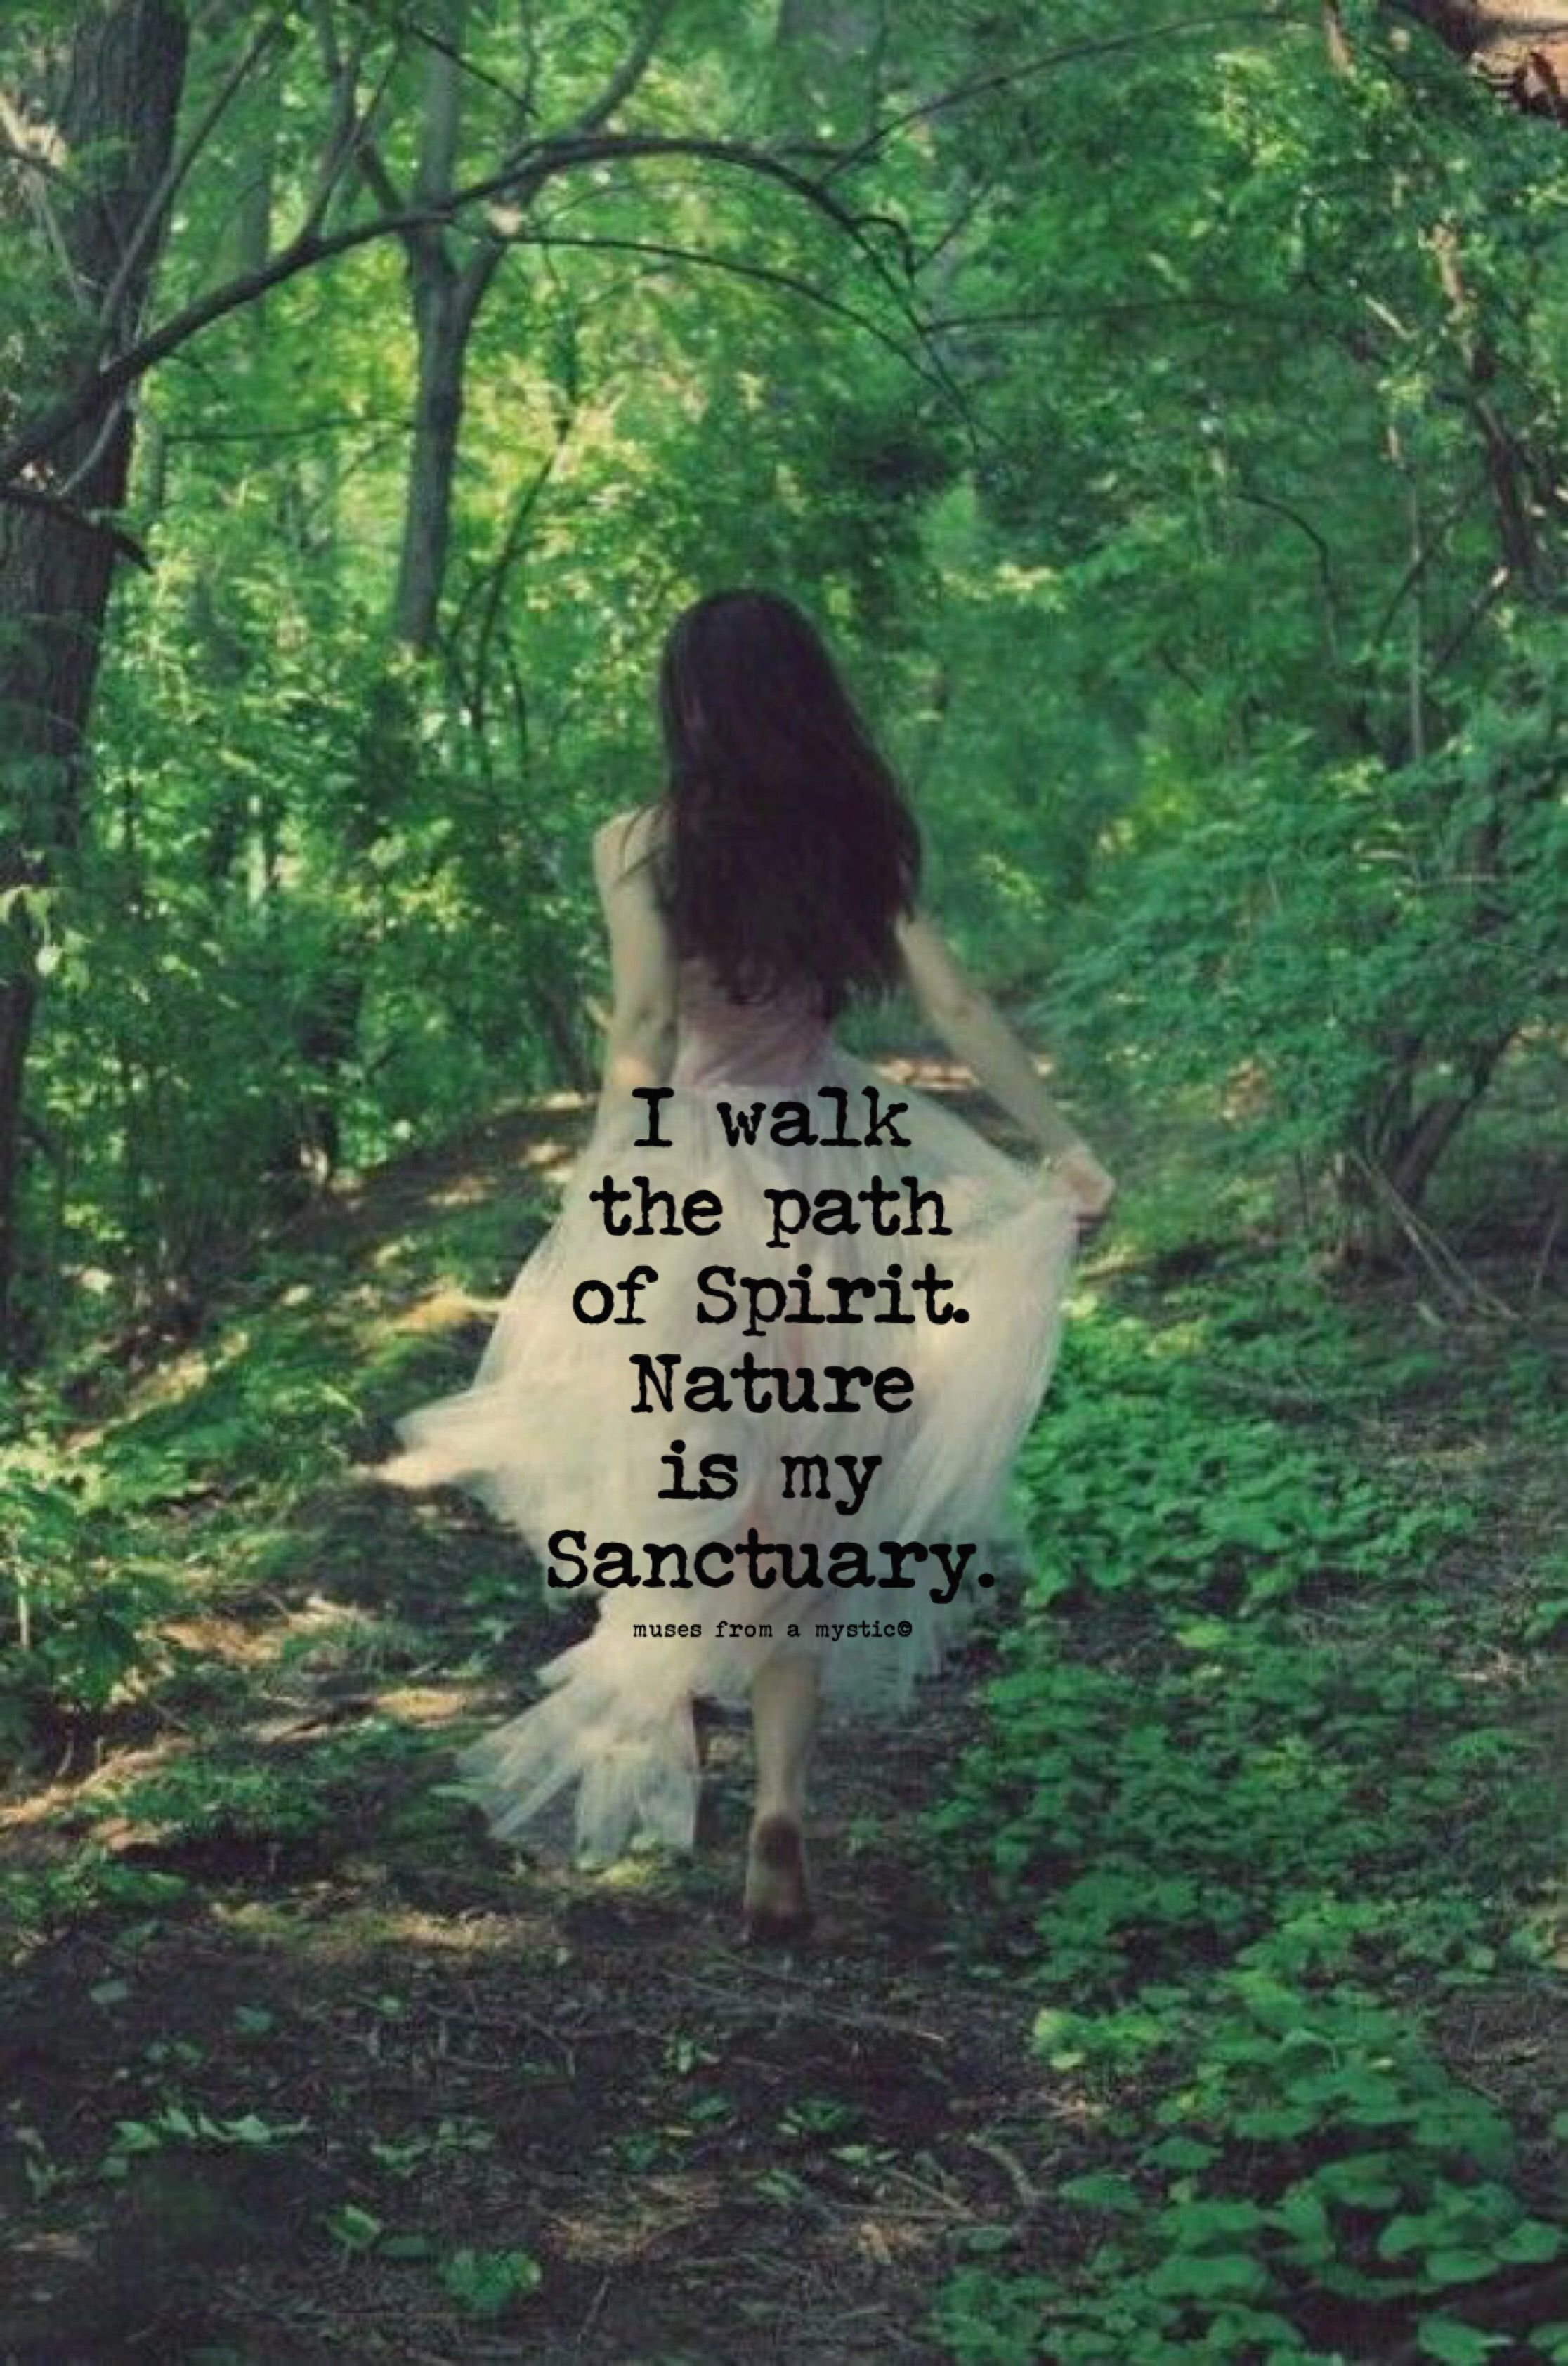 I walk the path of Spirit. Nature is my Sanctuary. | Simple words